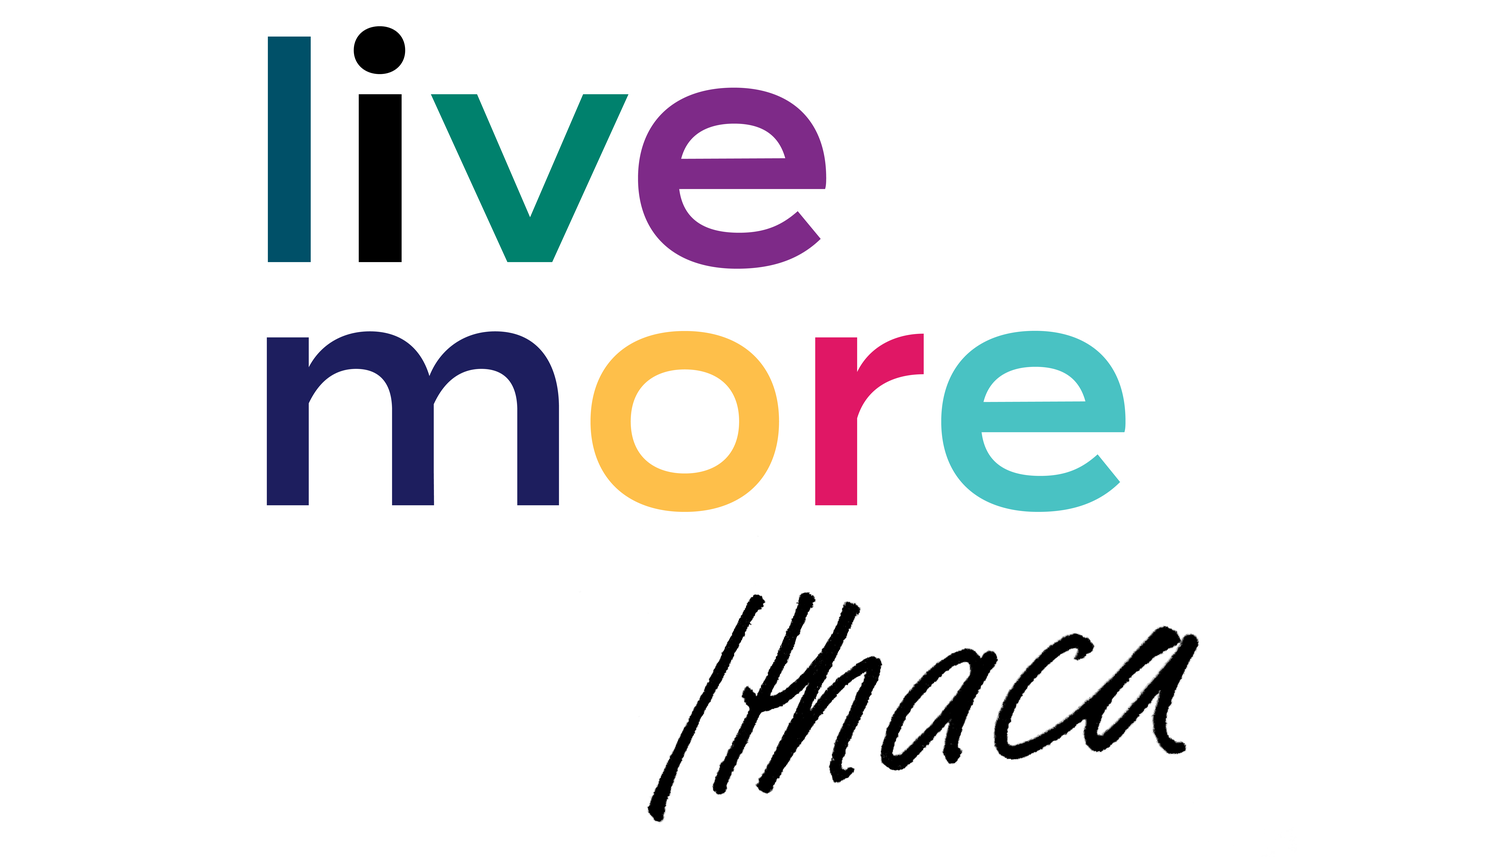 Live More Ithaca